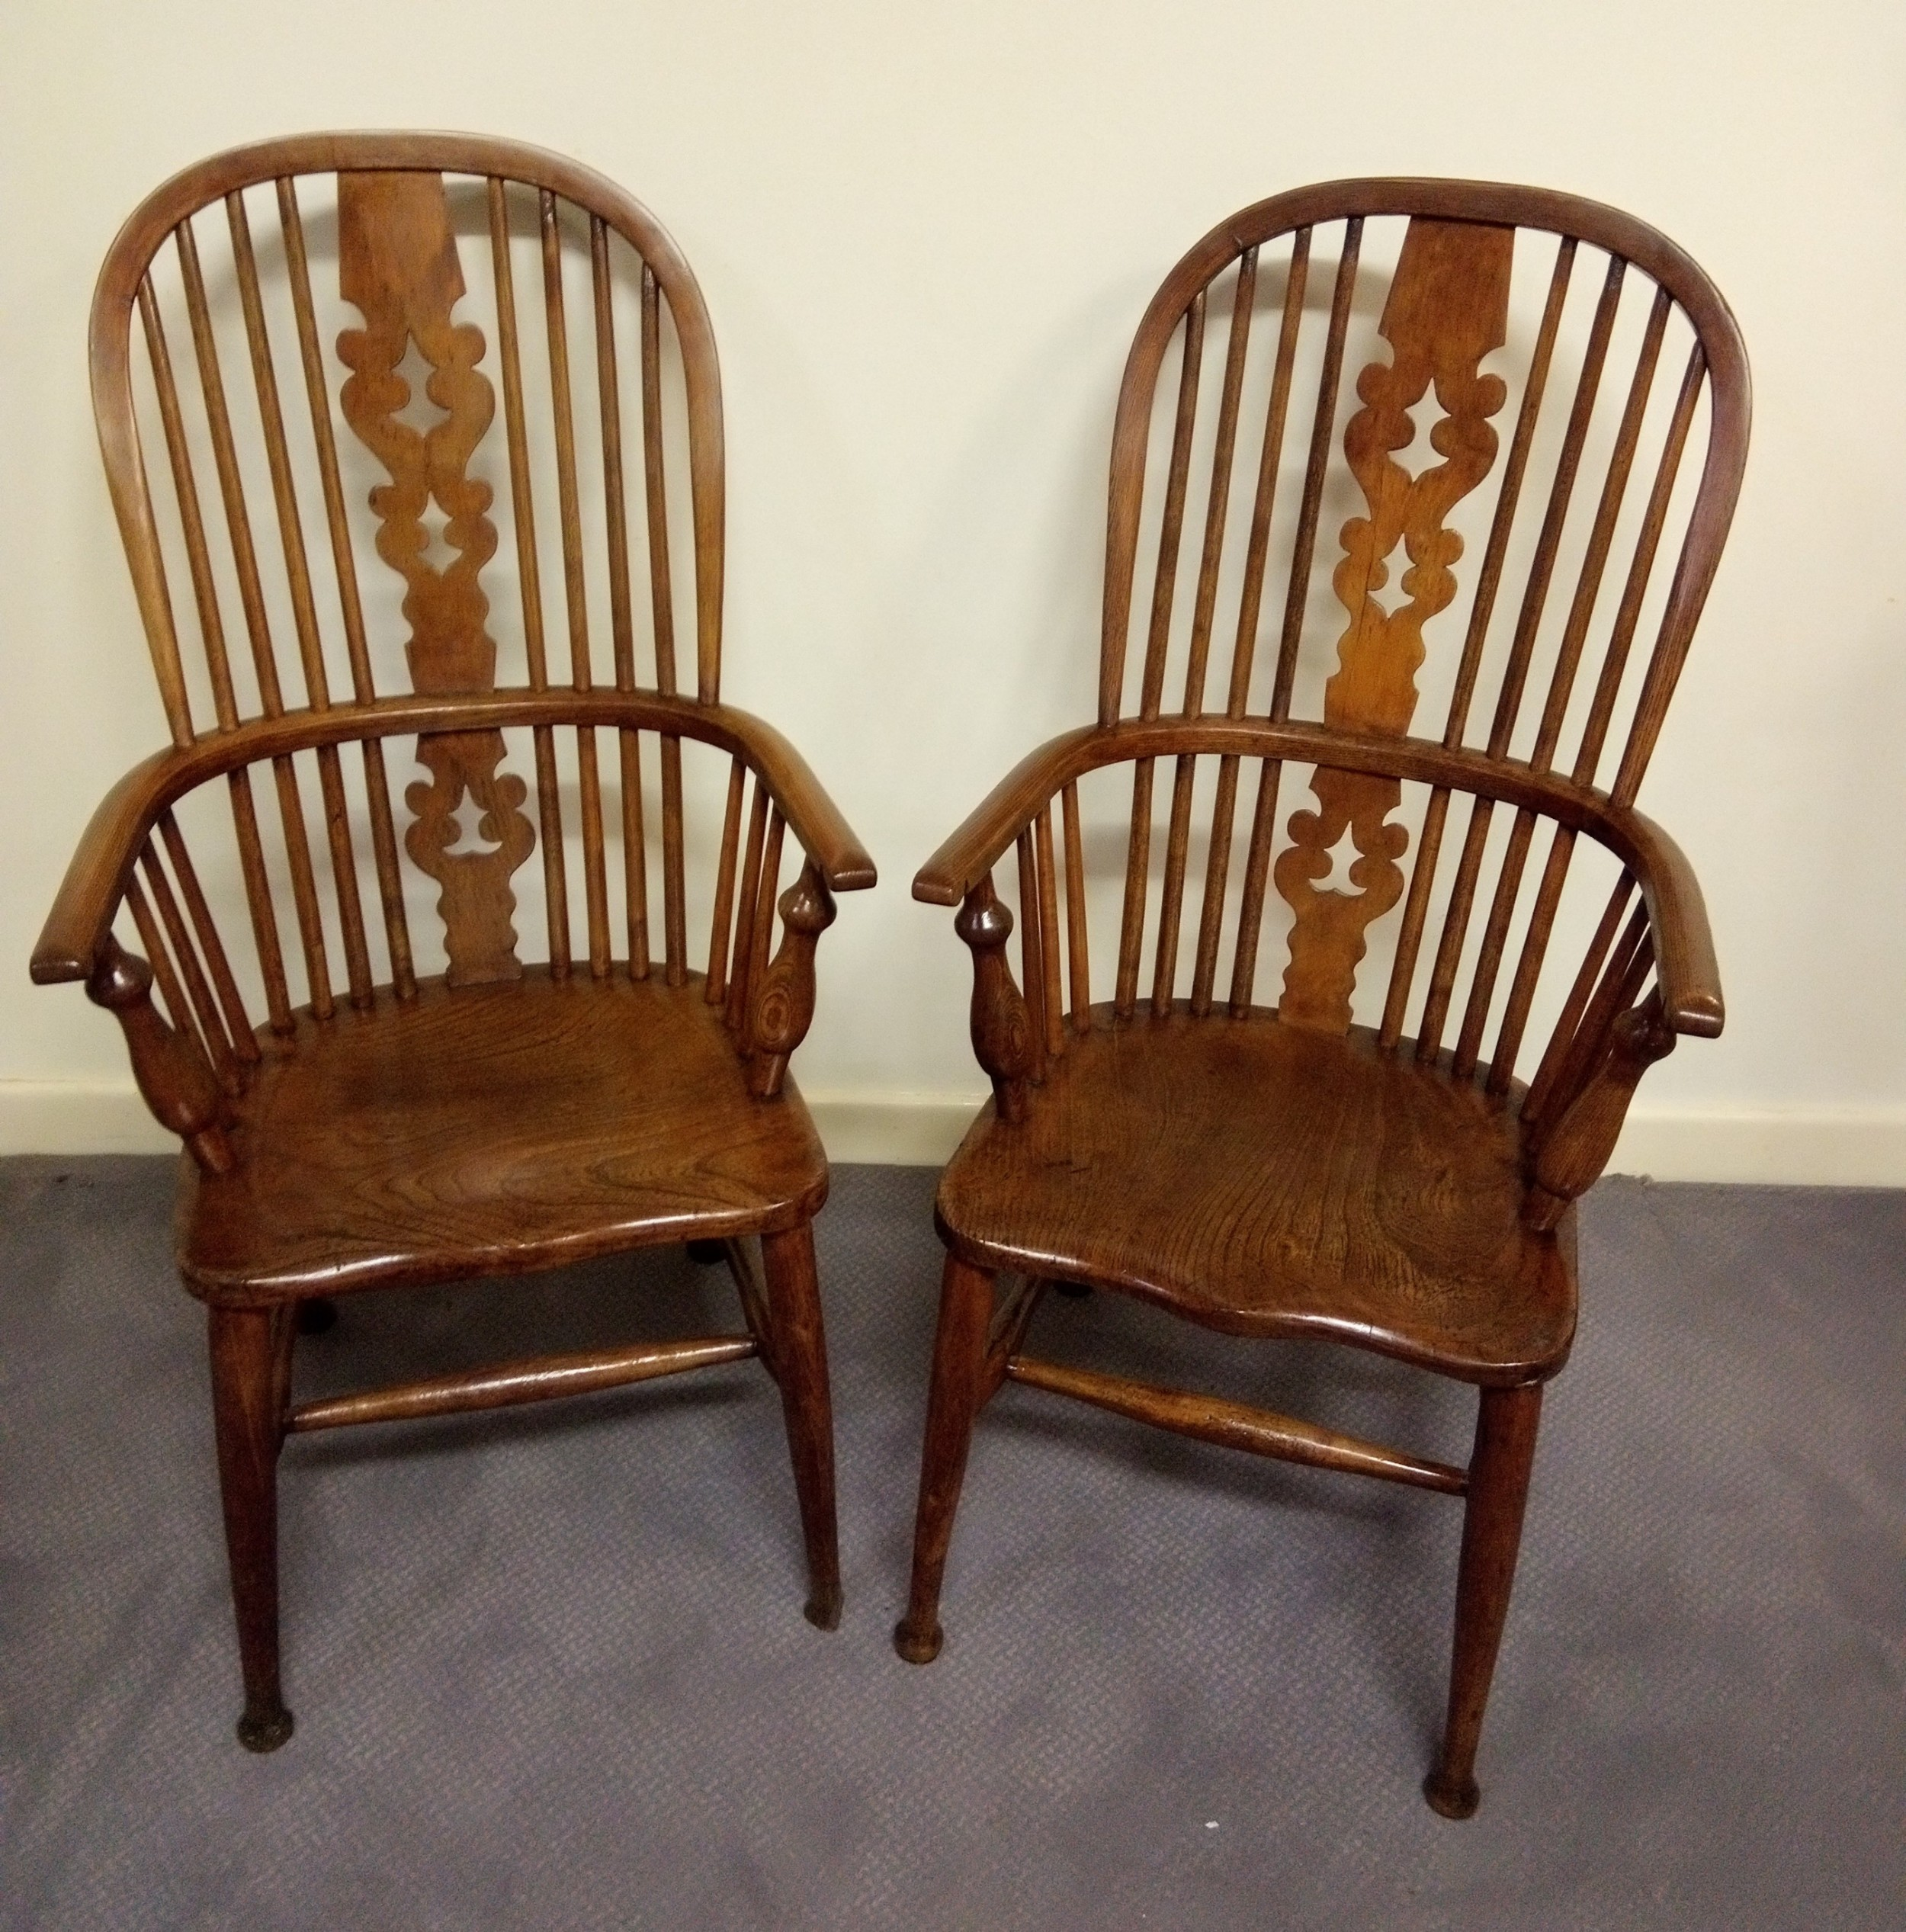 Attractive Pair Of High Back Windsor Arm Chairs | 657833 ...